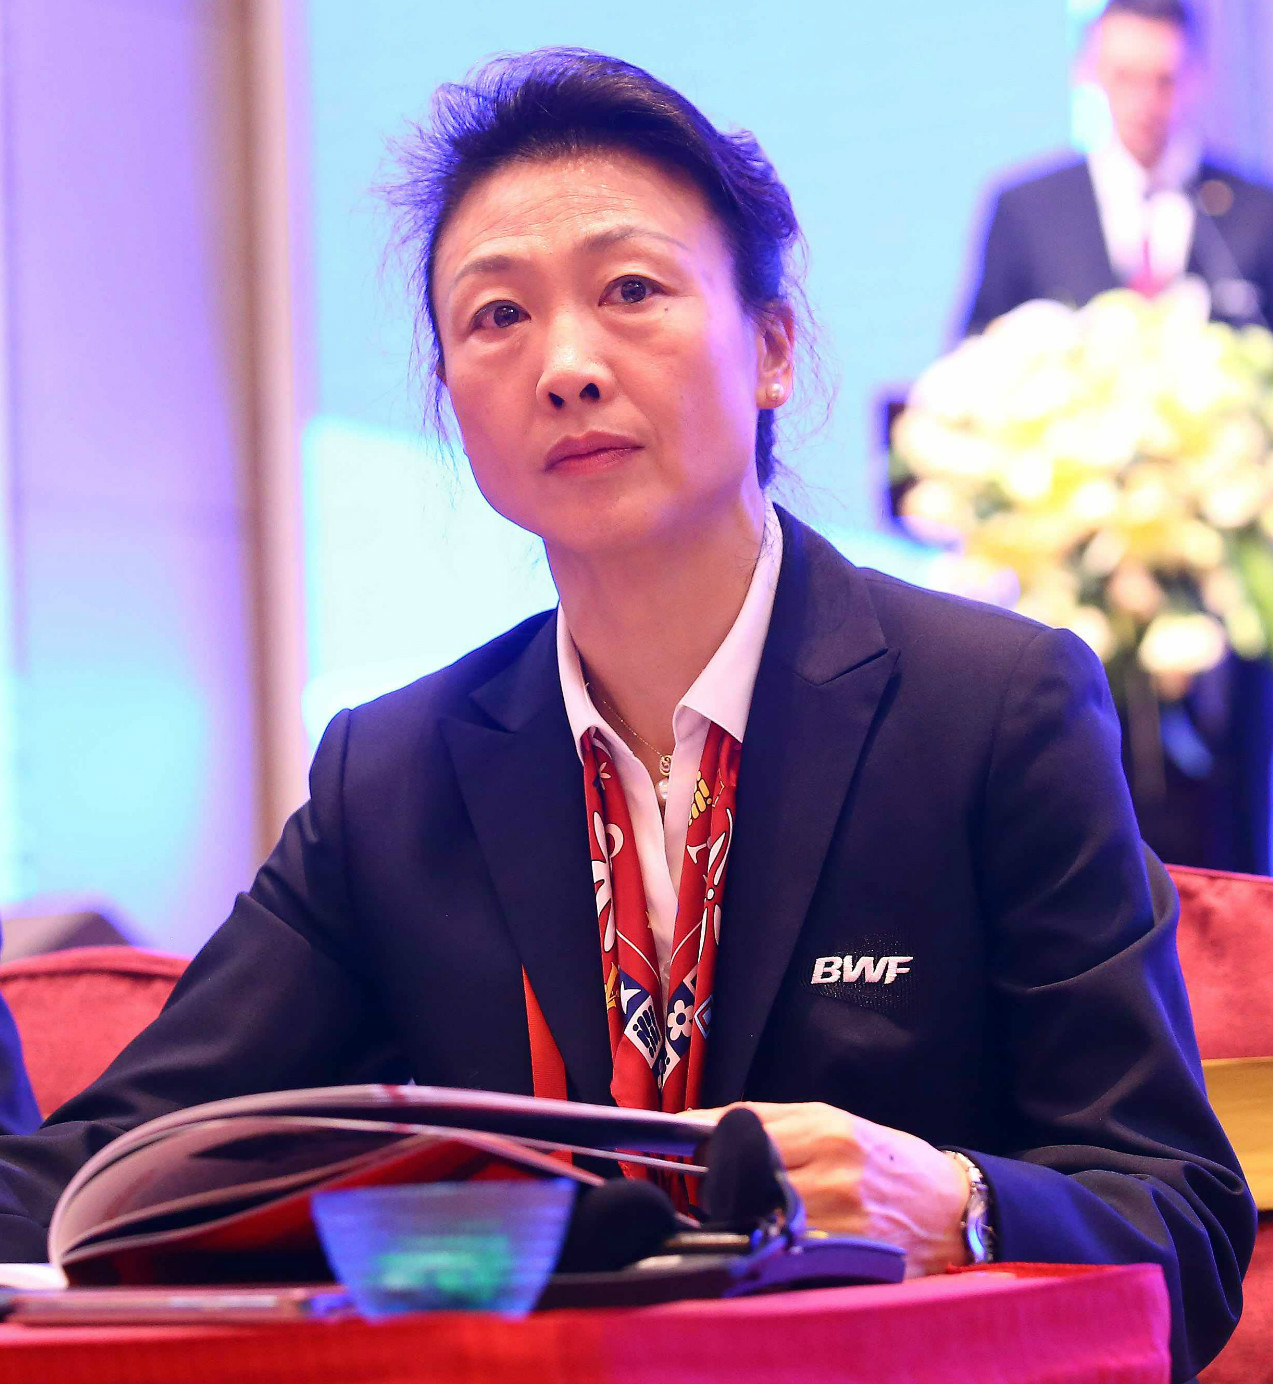 Li lingwei during bwf agm in may 2015 at dongguan, china